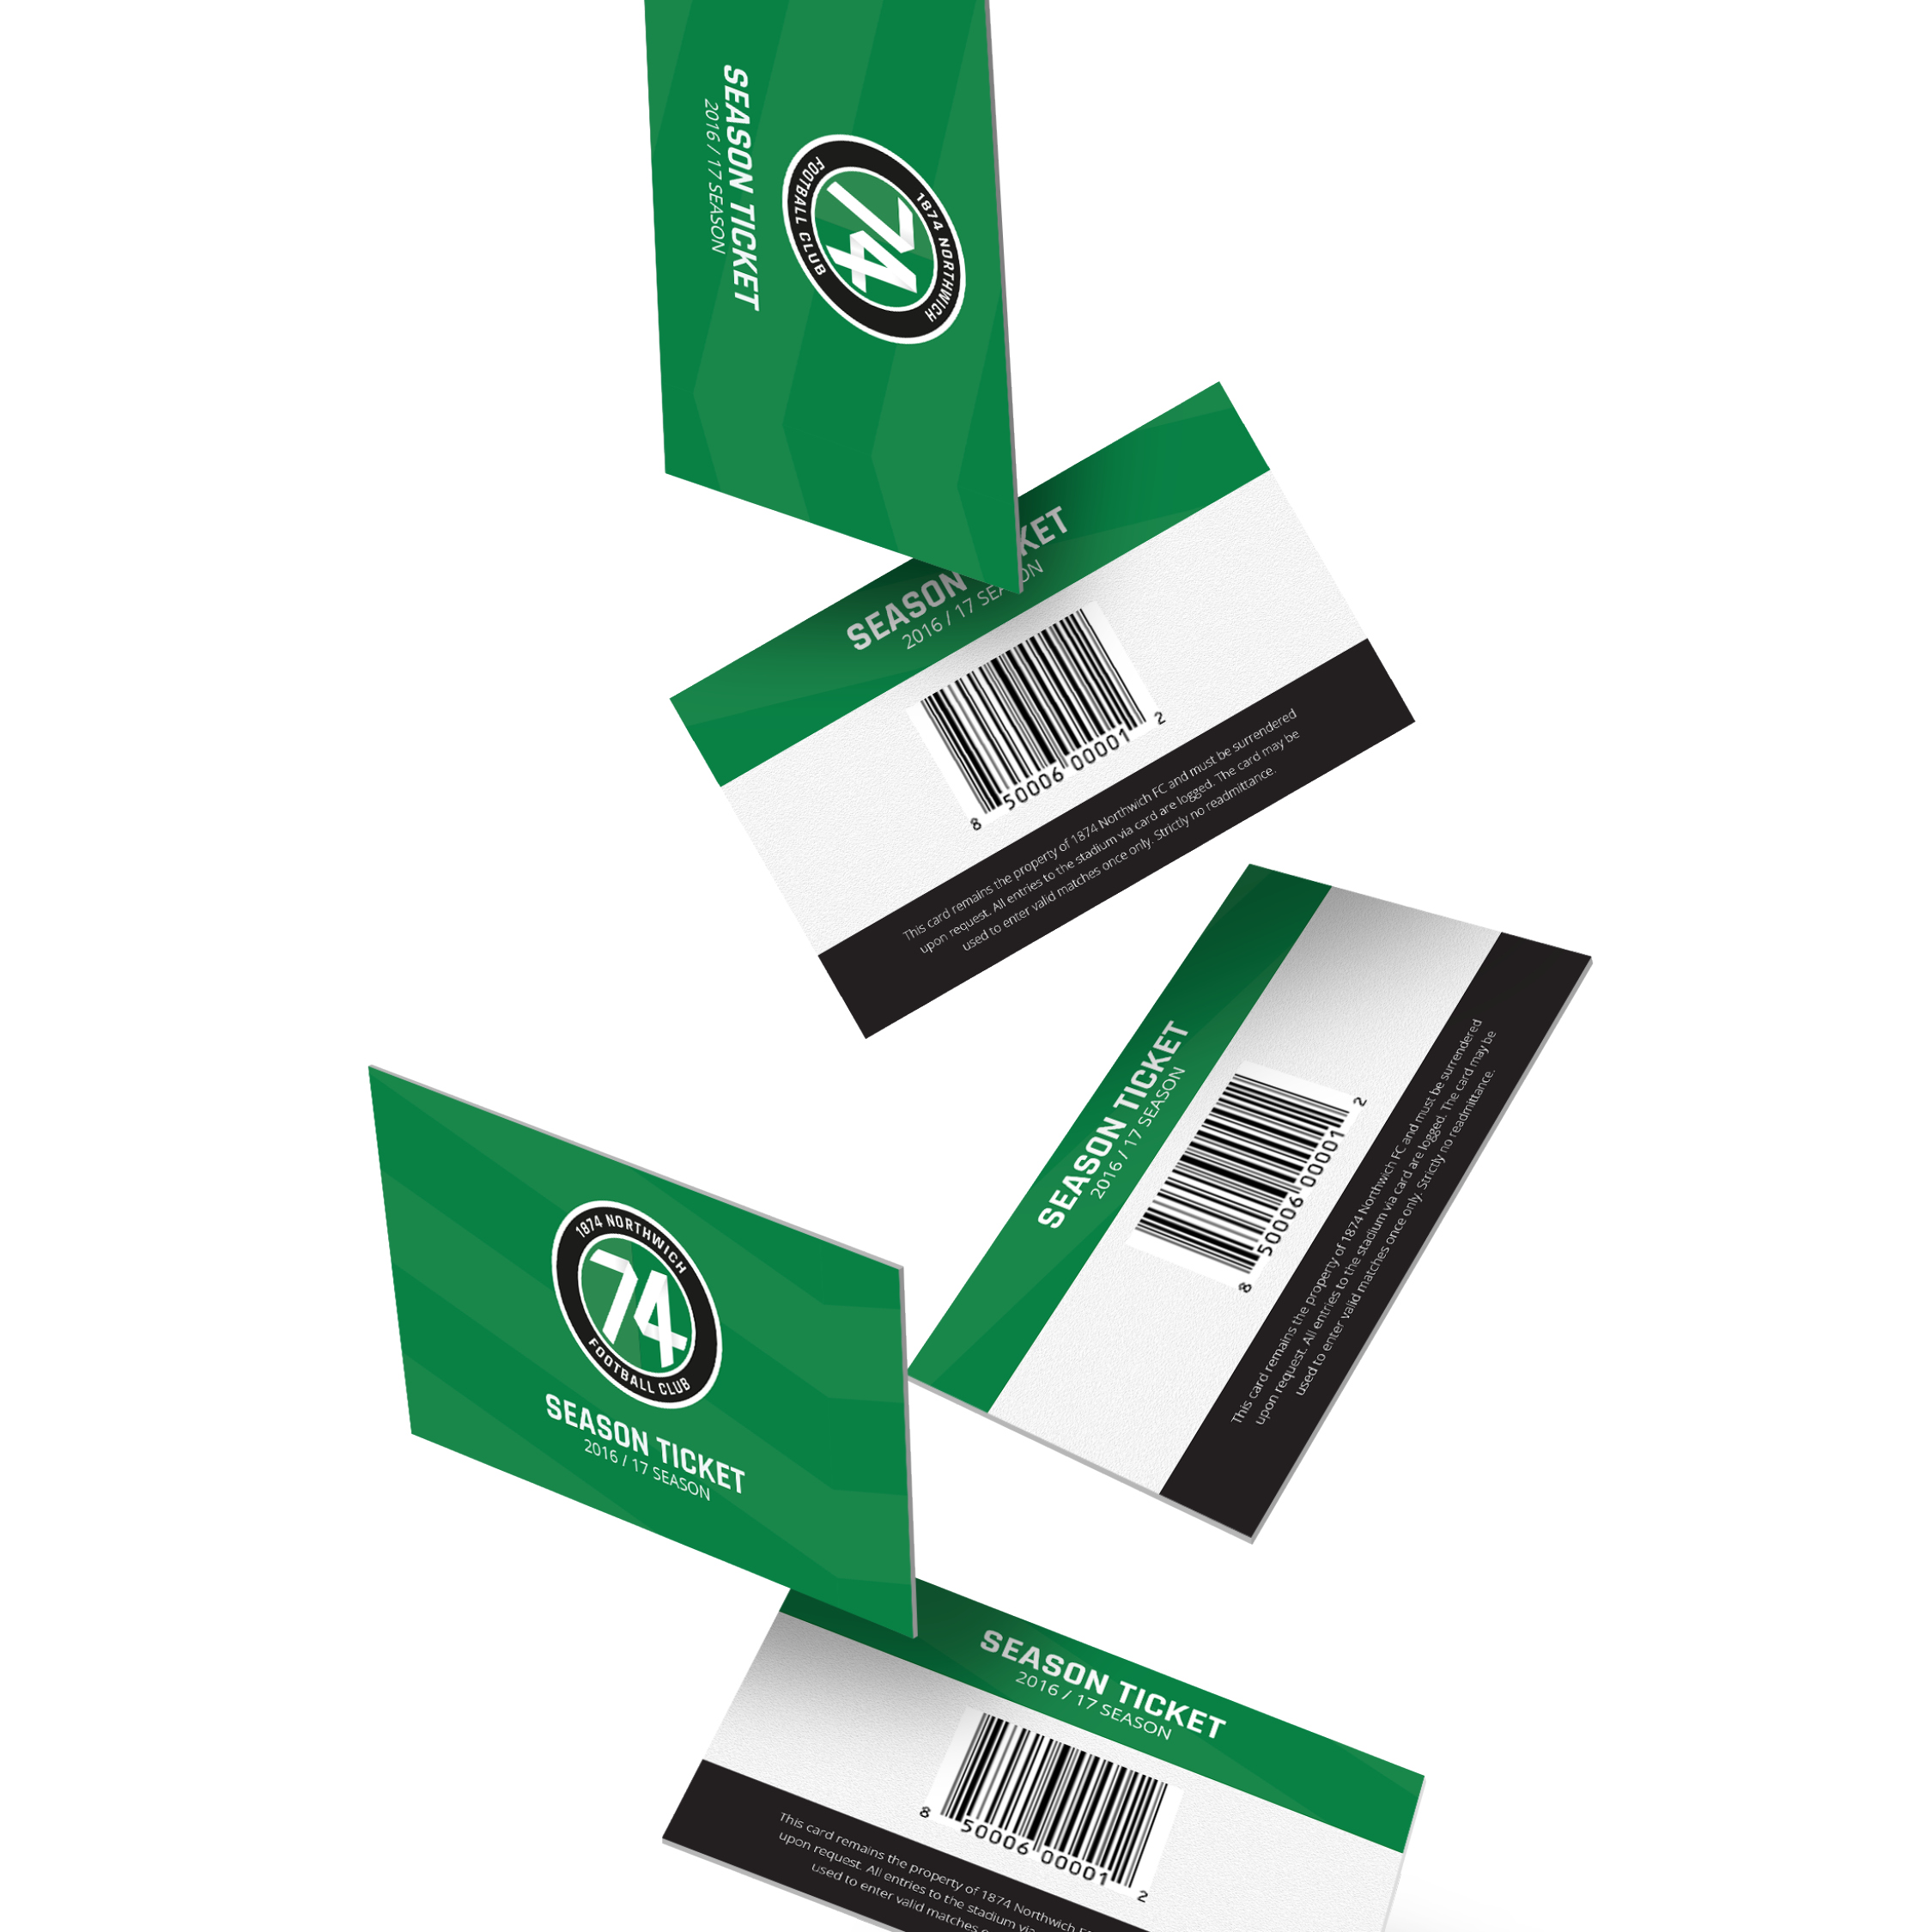 1874 Northwich Football Club season tickets by Ben Clark Design